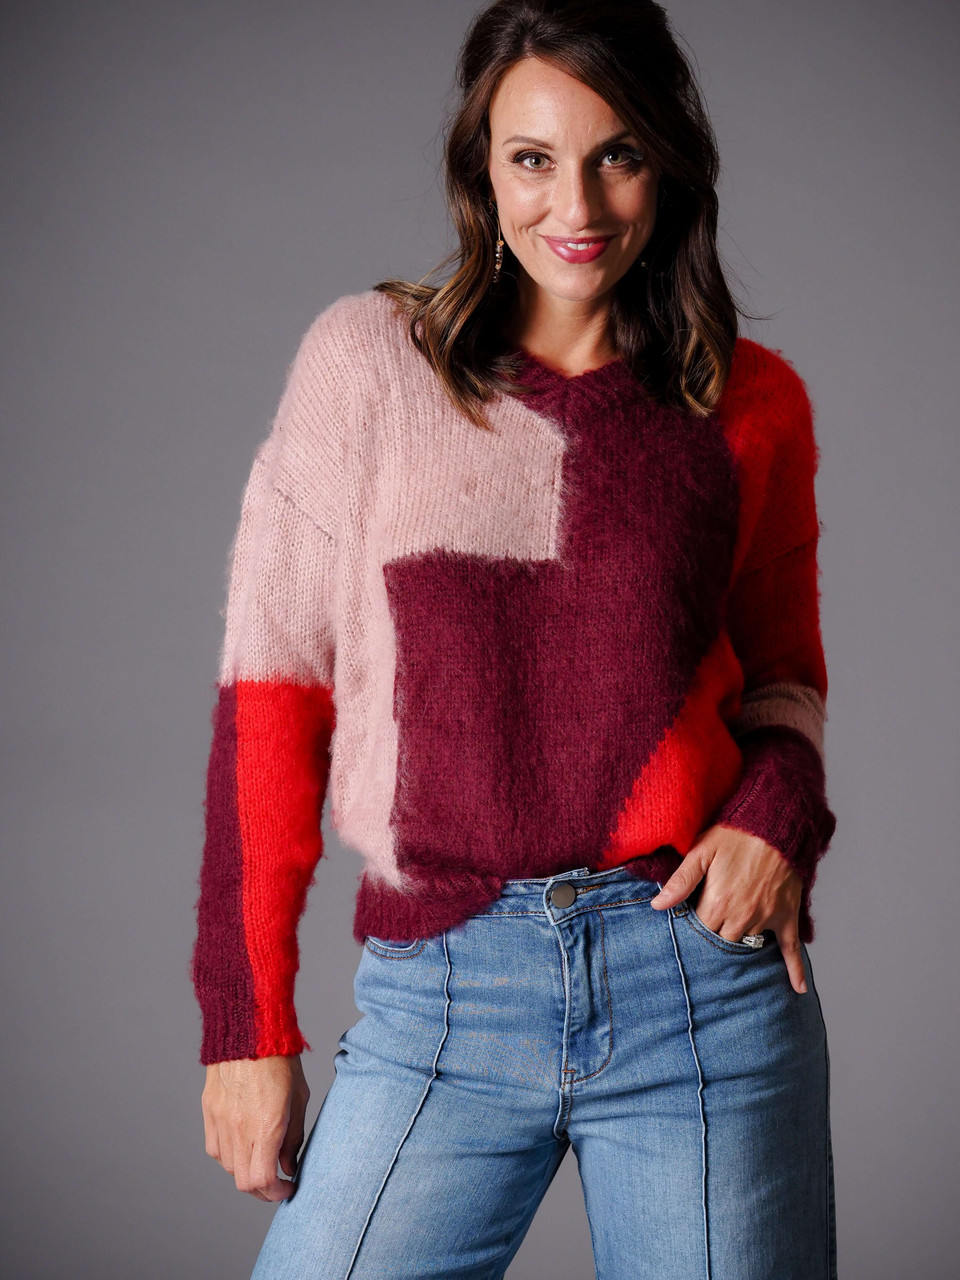 rose burgundy and red color block sweater